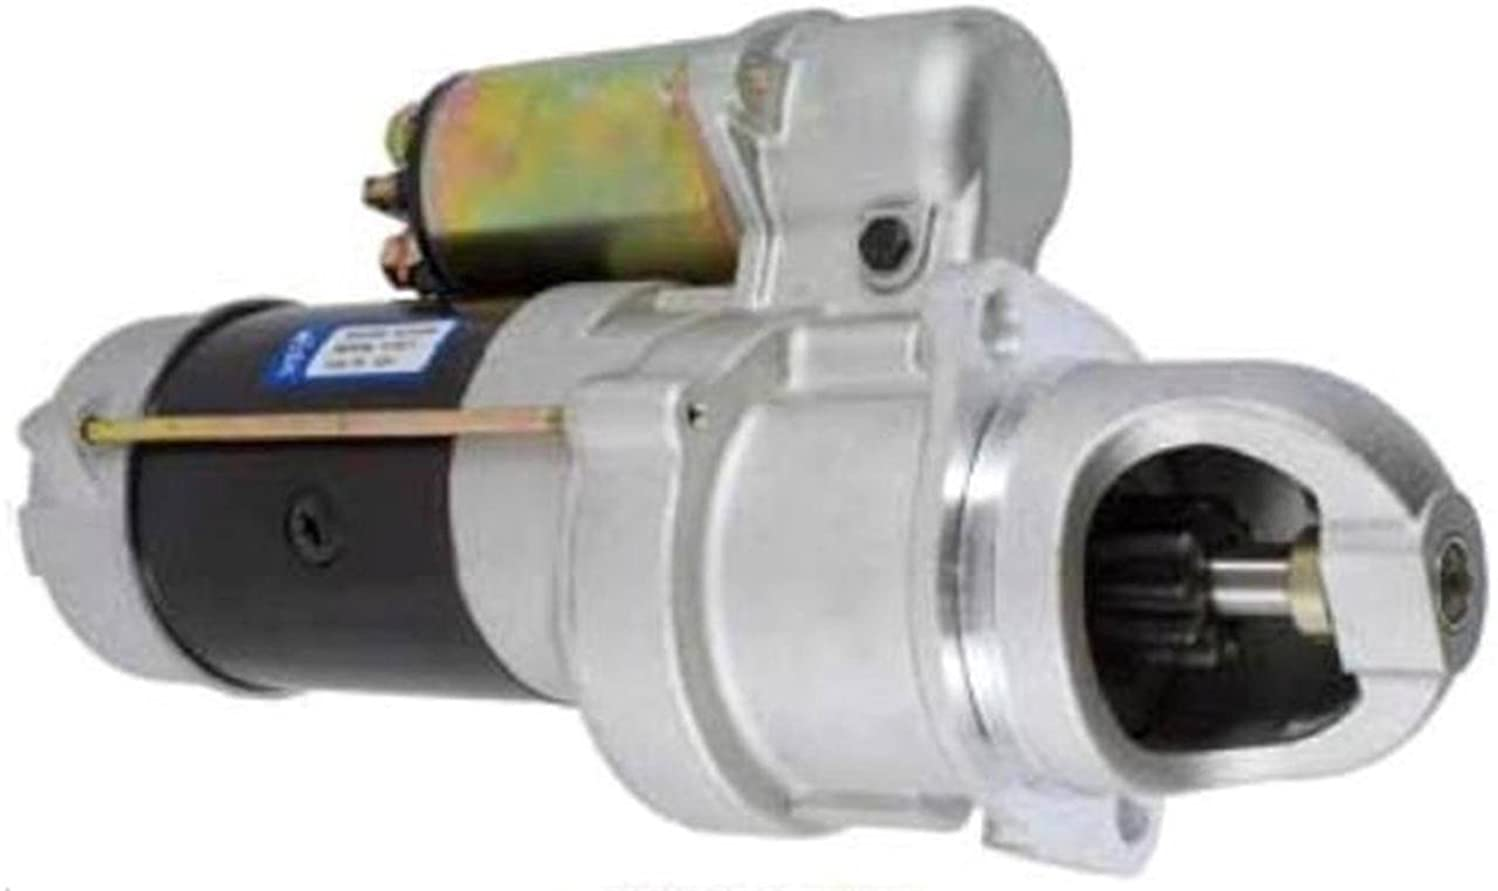 NEW STARTER MOTOR FITS JOHN DEERE BACKHOE 310A 310B 310C 310D 1107577 AT18150 OSGR